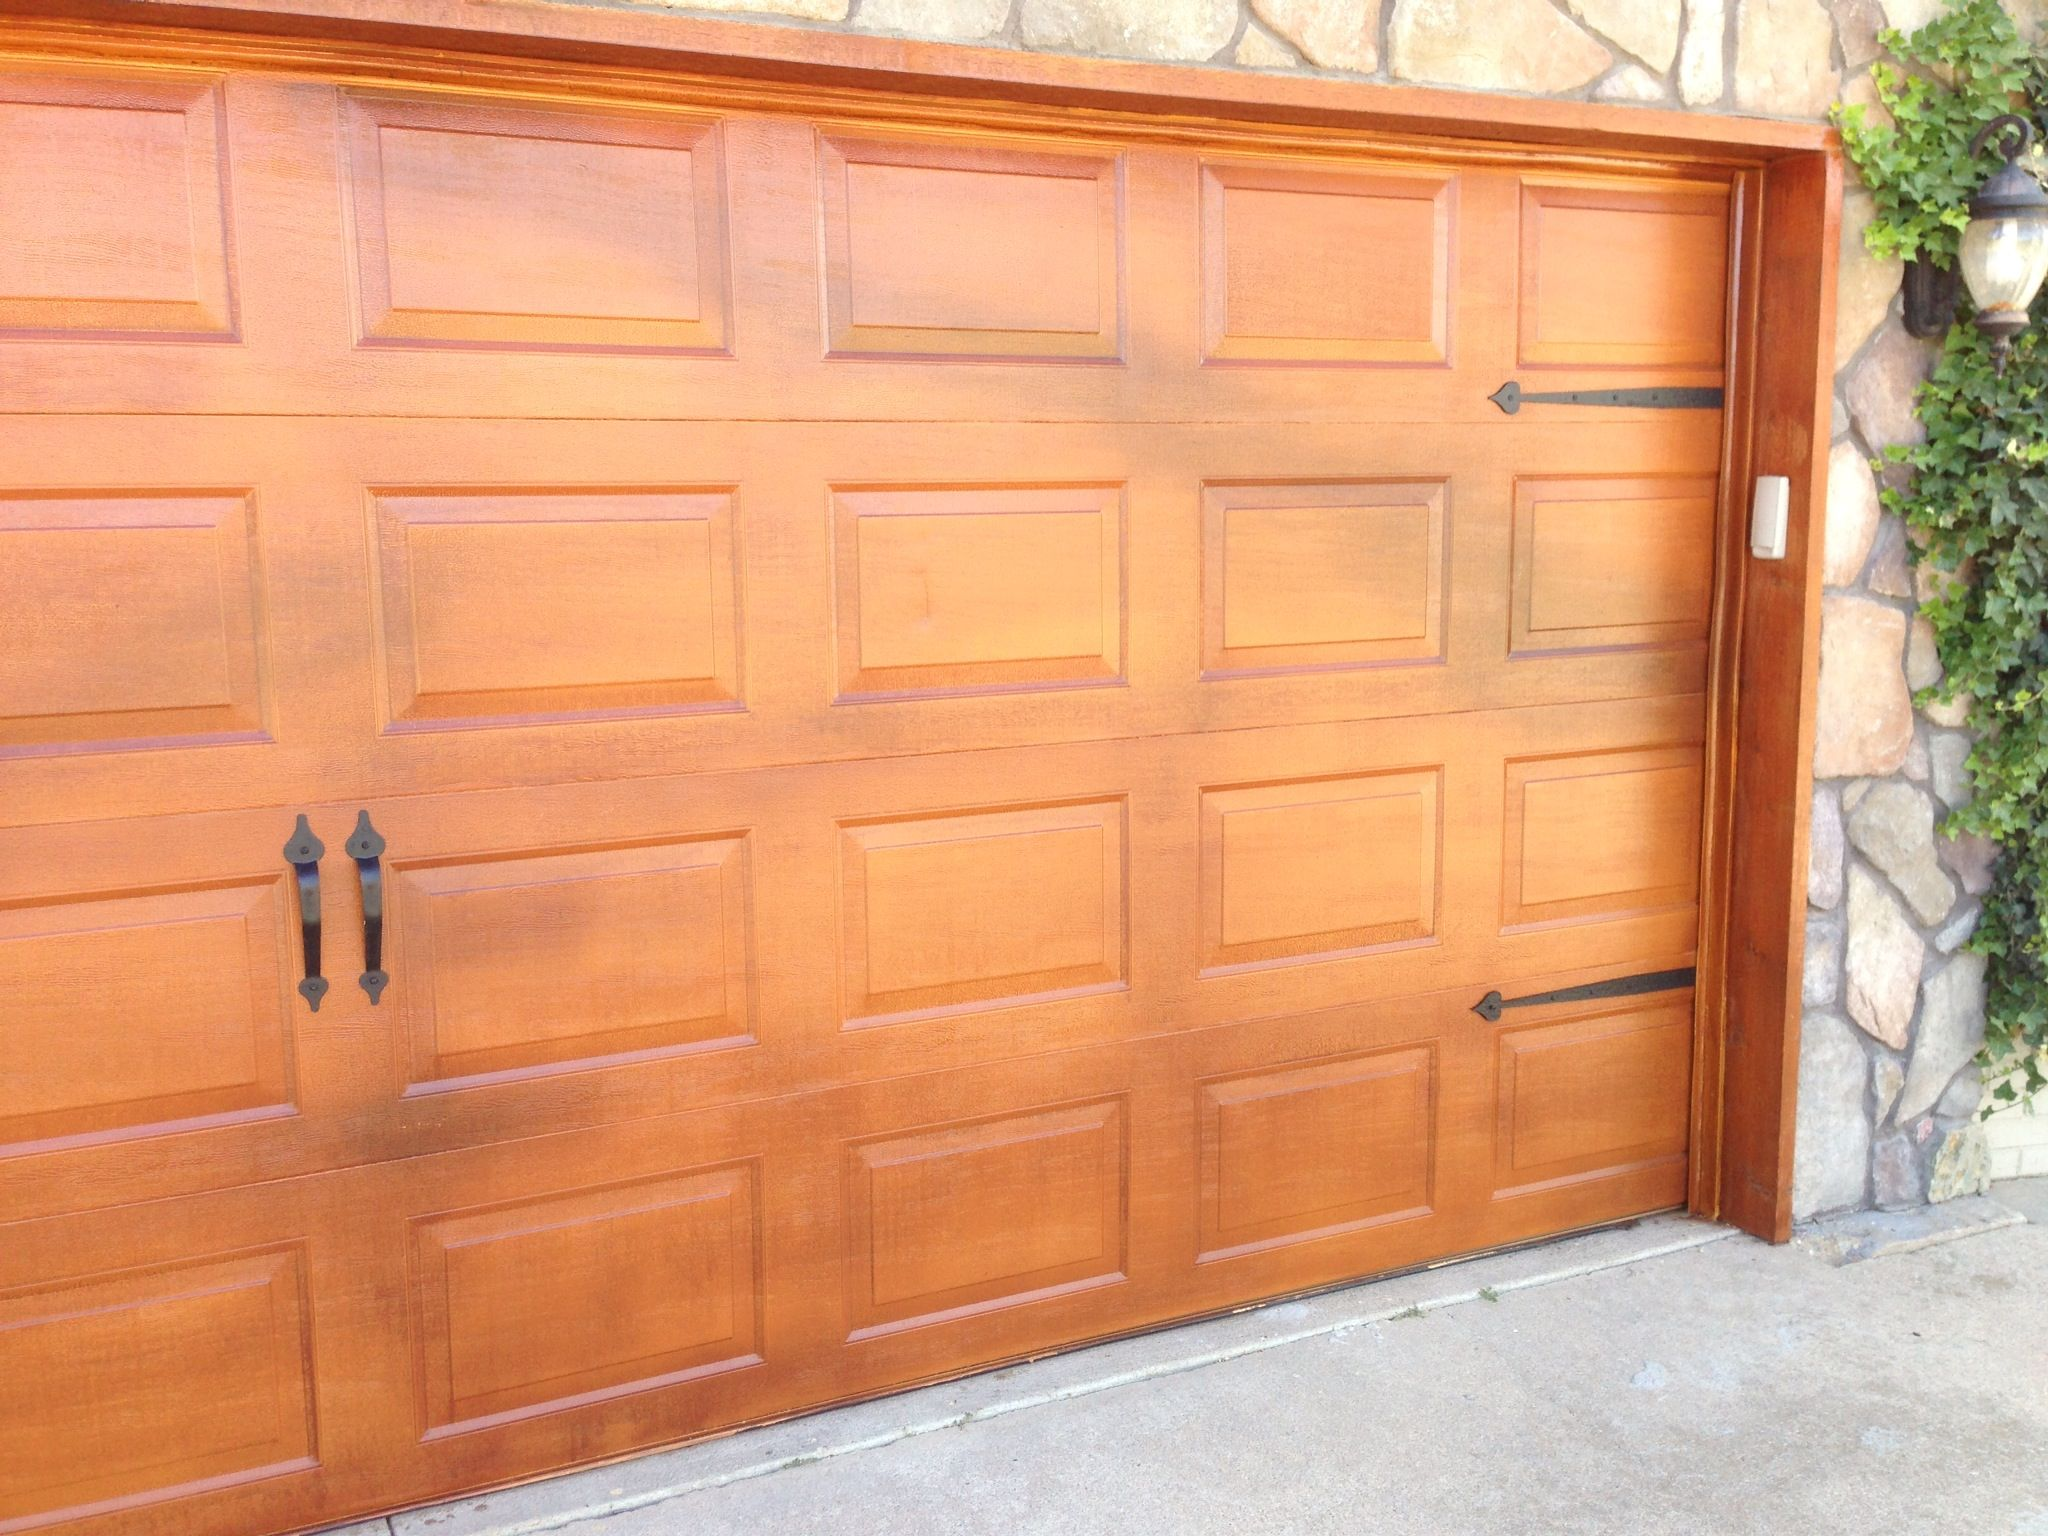 Metal Garage Door Made To Look Like Cedar Garage Door Decor Metal Garage Doors Cedar Garage Door